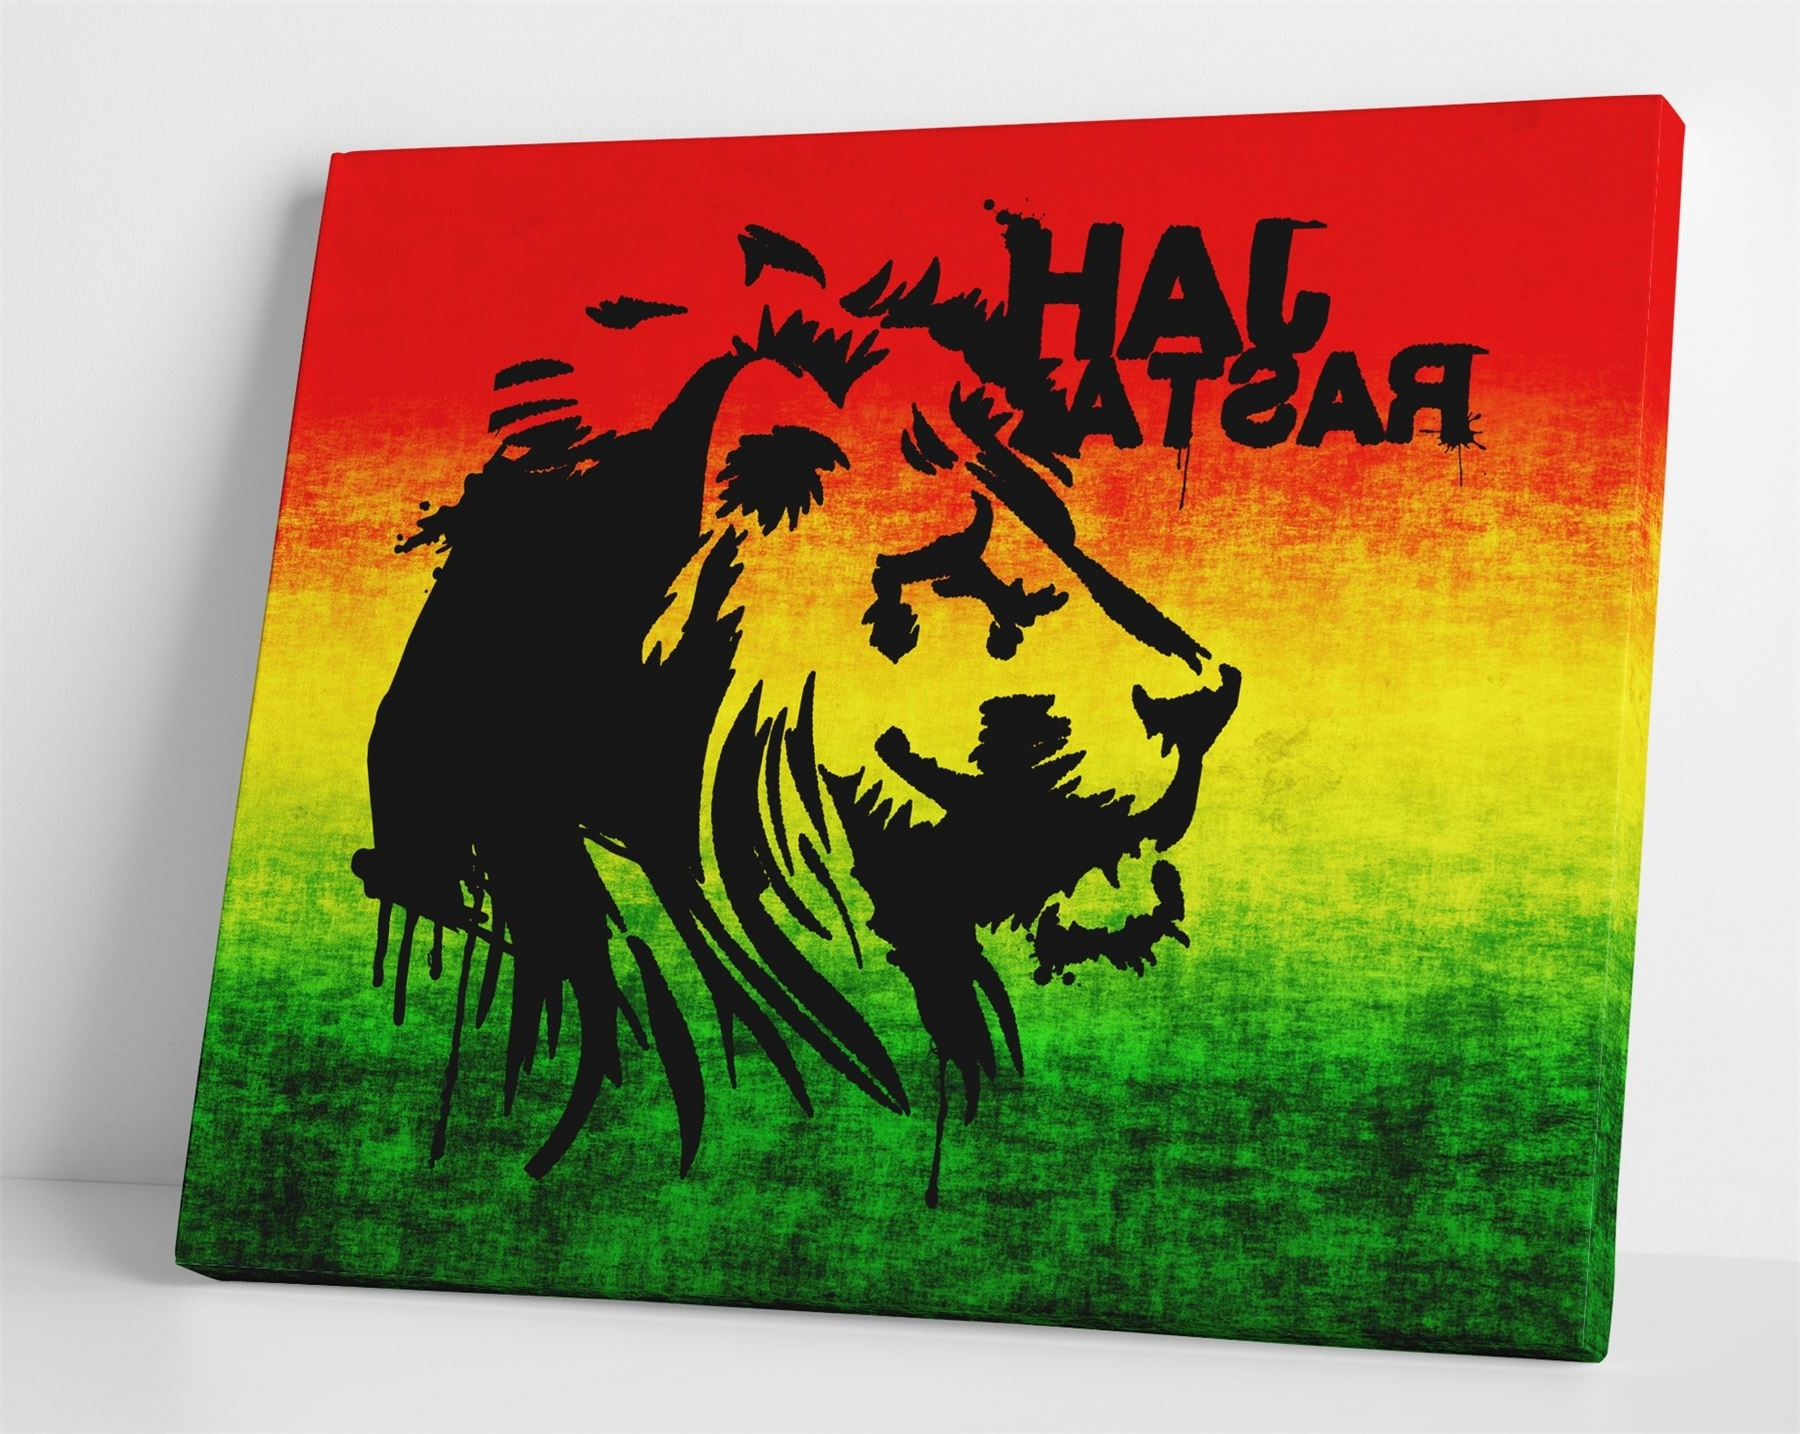 Jah Rasta Box Canvas Print Wall Art  Reggae Rasta Bob Marley For Most Up To Date Bob Marley Canvas Wall Art (View 8 of 15)